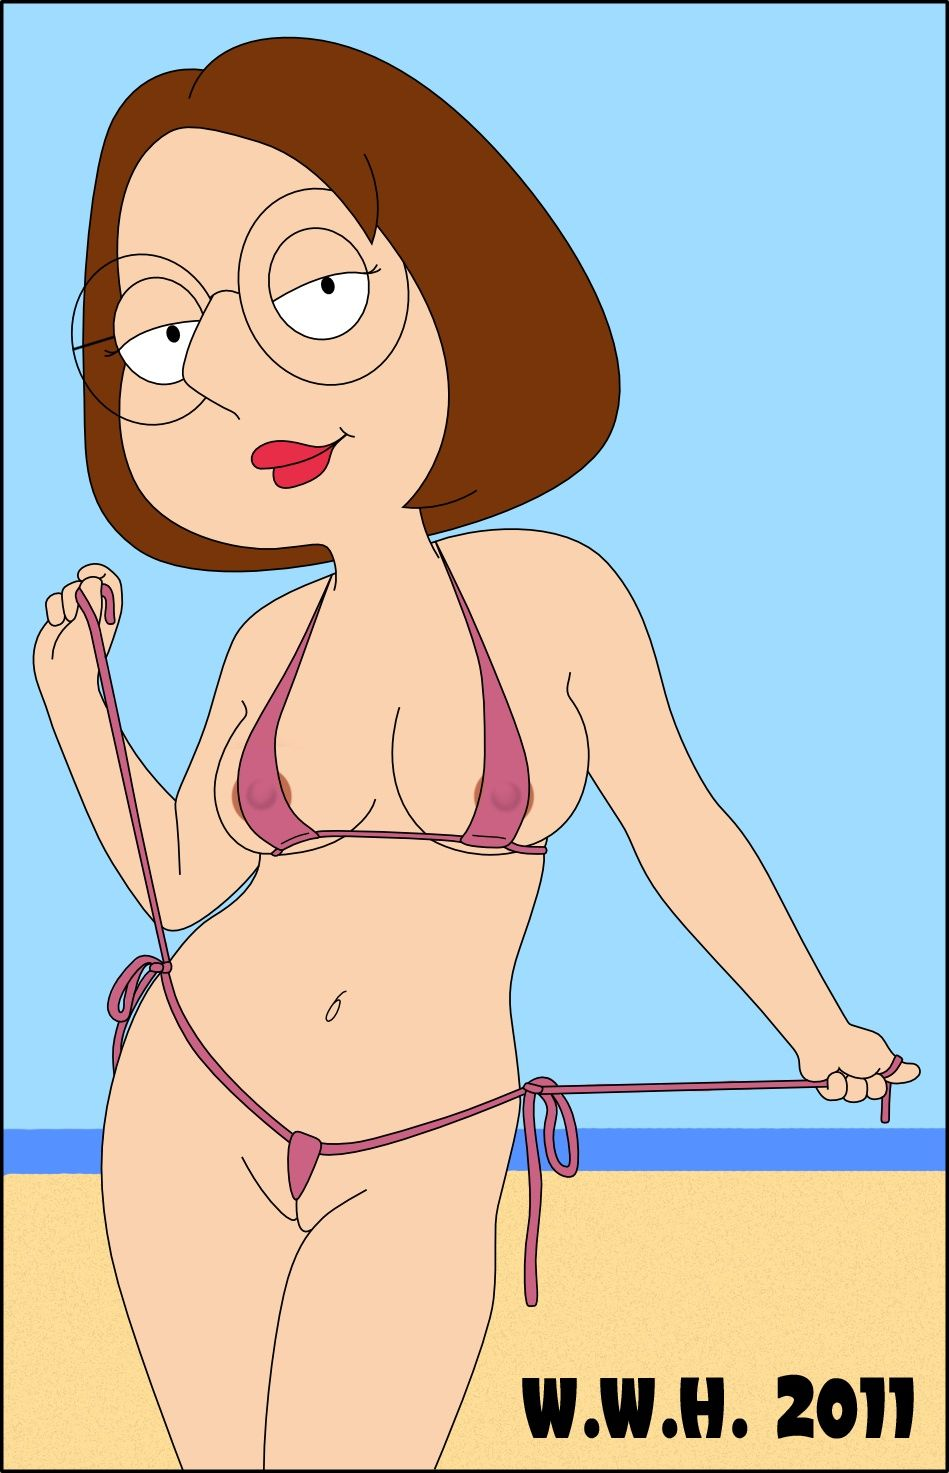 meg griffin naked